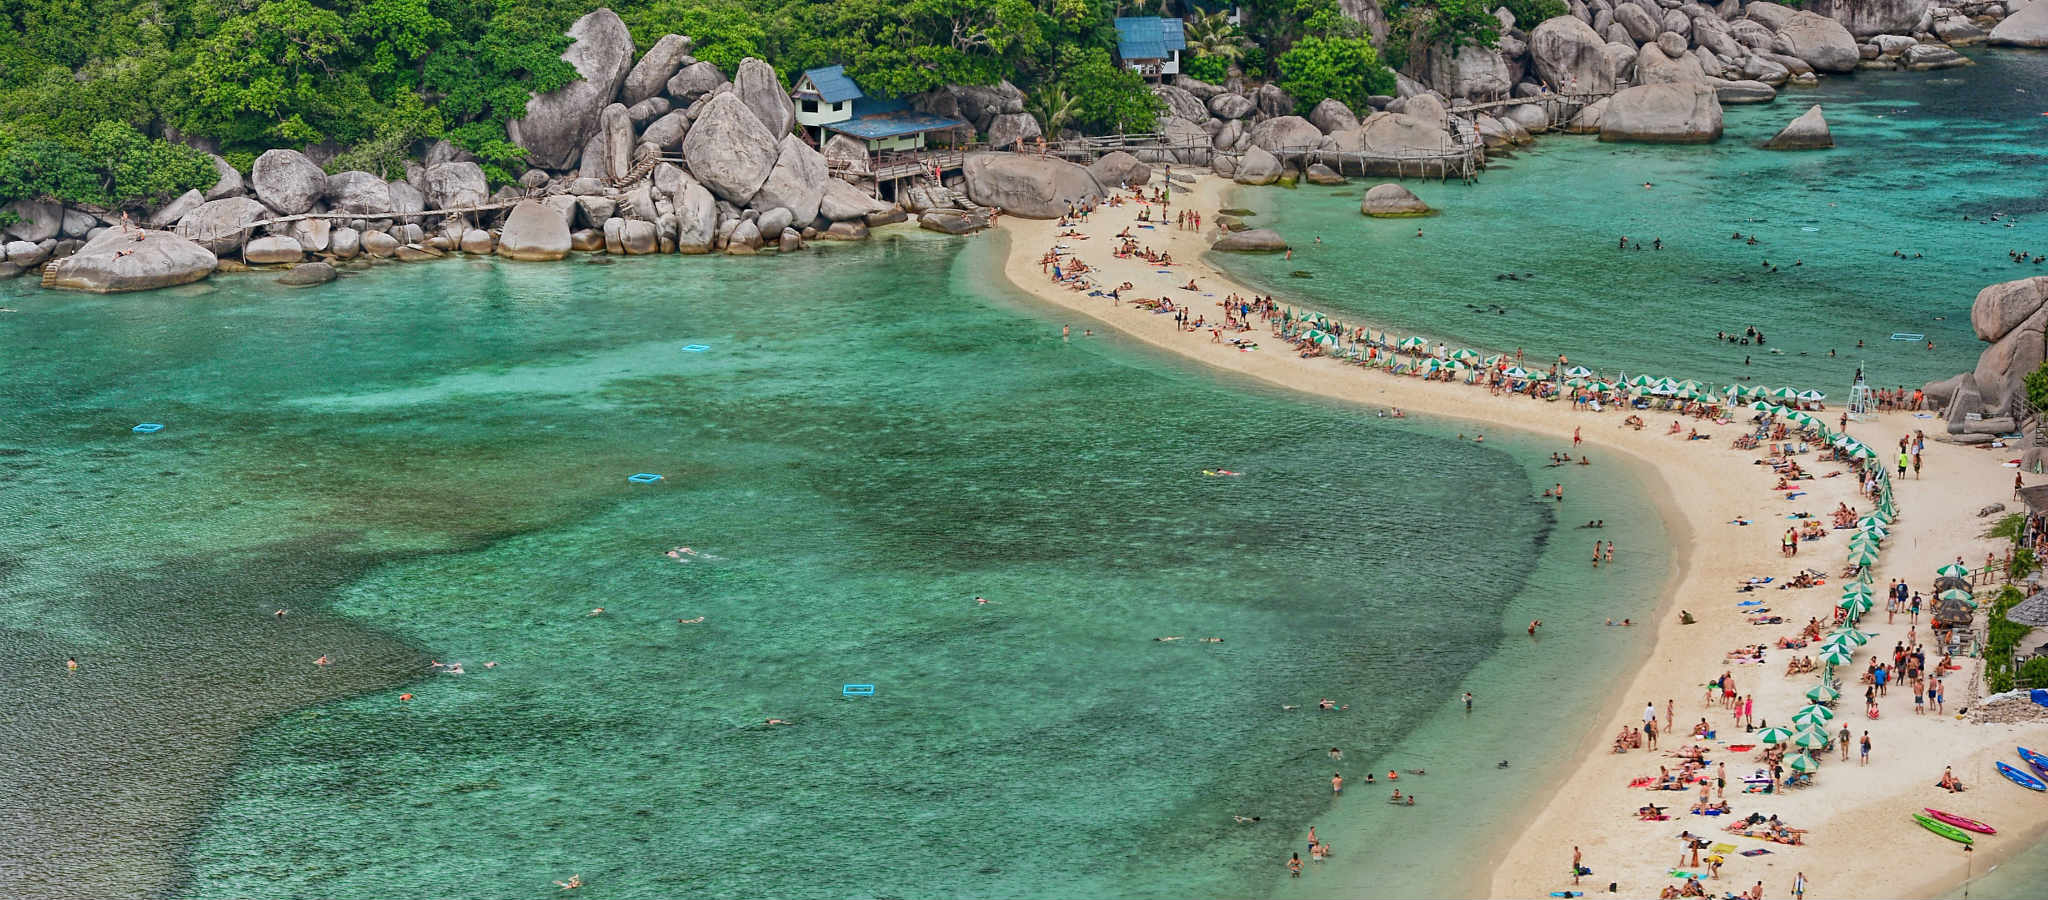 Beach and islands from the top of Koh Nang Yuan in Koh Tao, Thailand